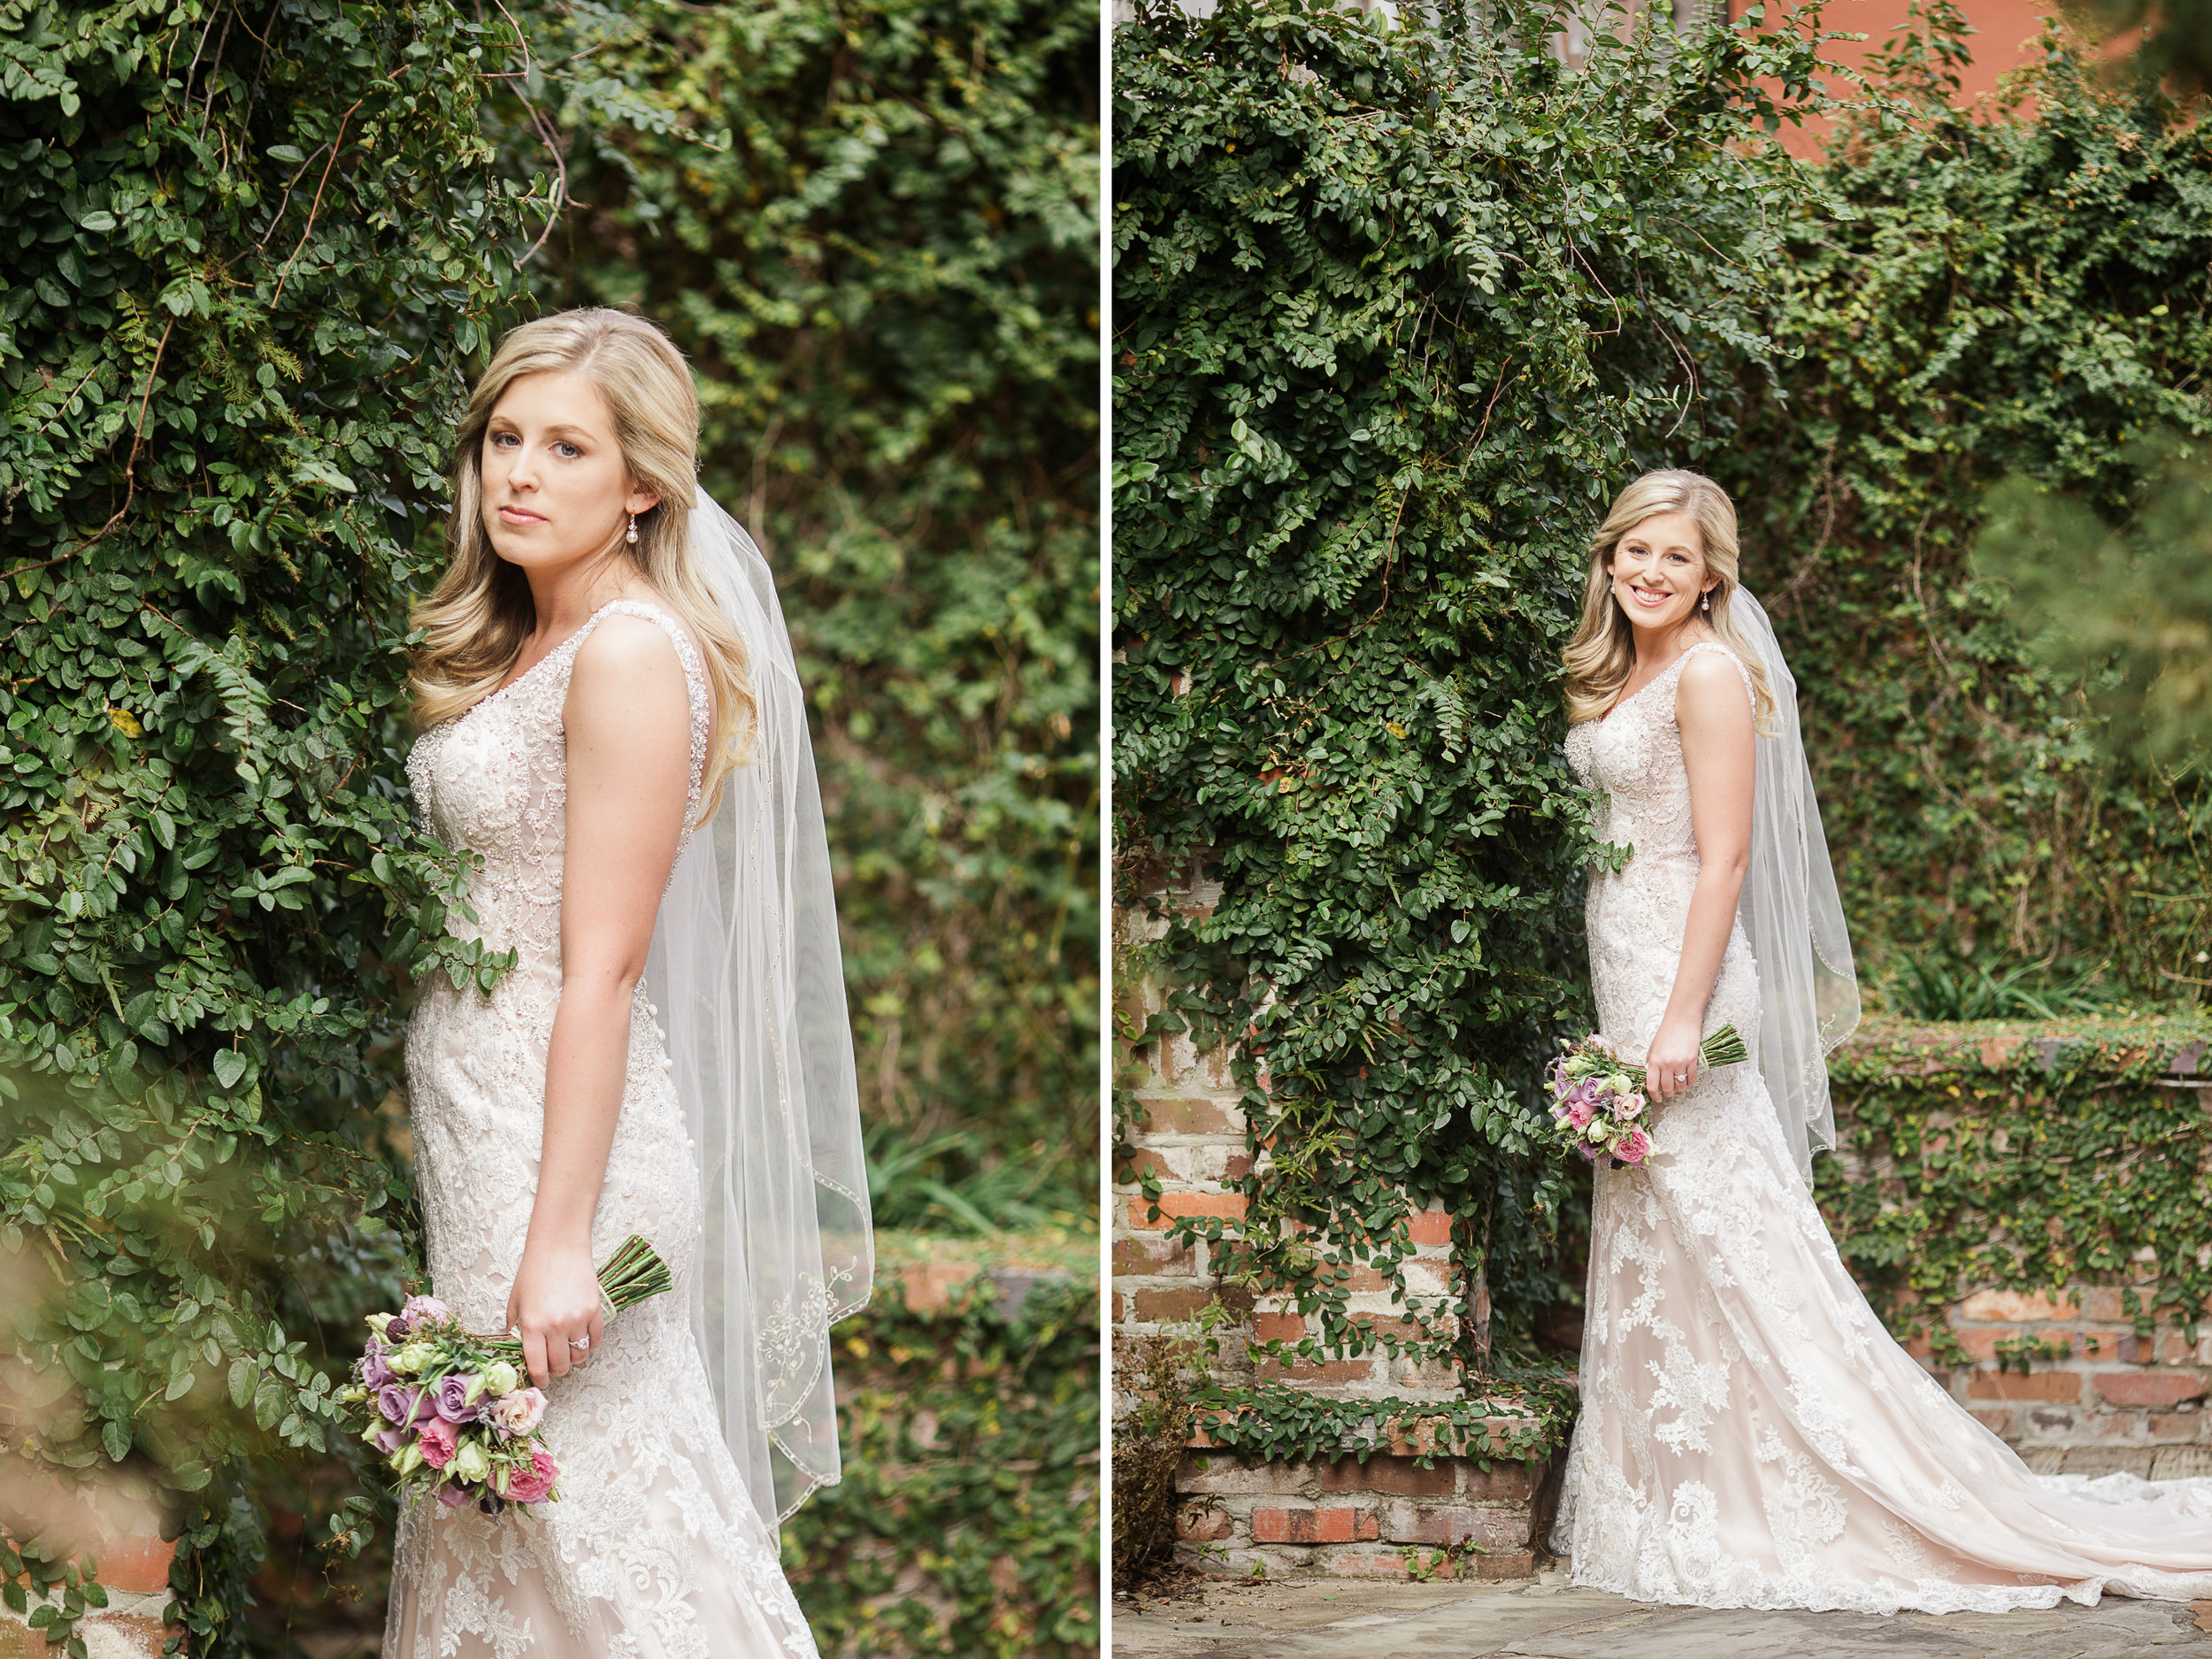 I just love how dreamy this spot is with her lace dress and all that ivy!